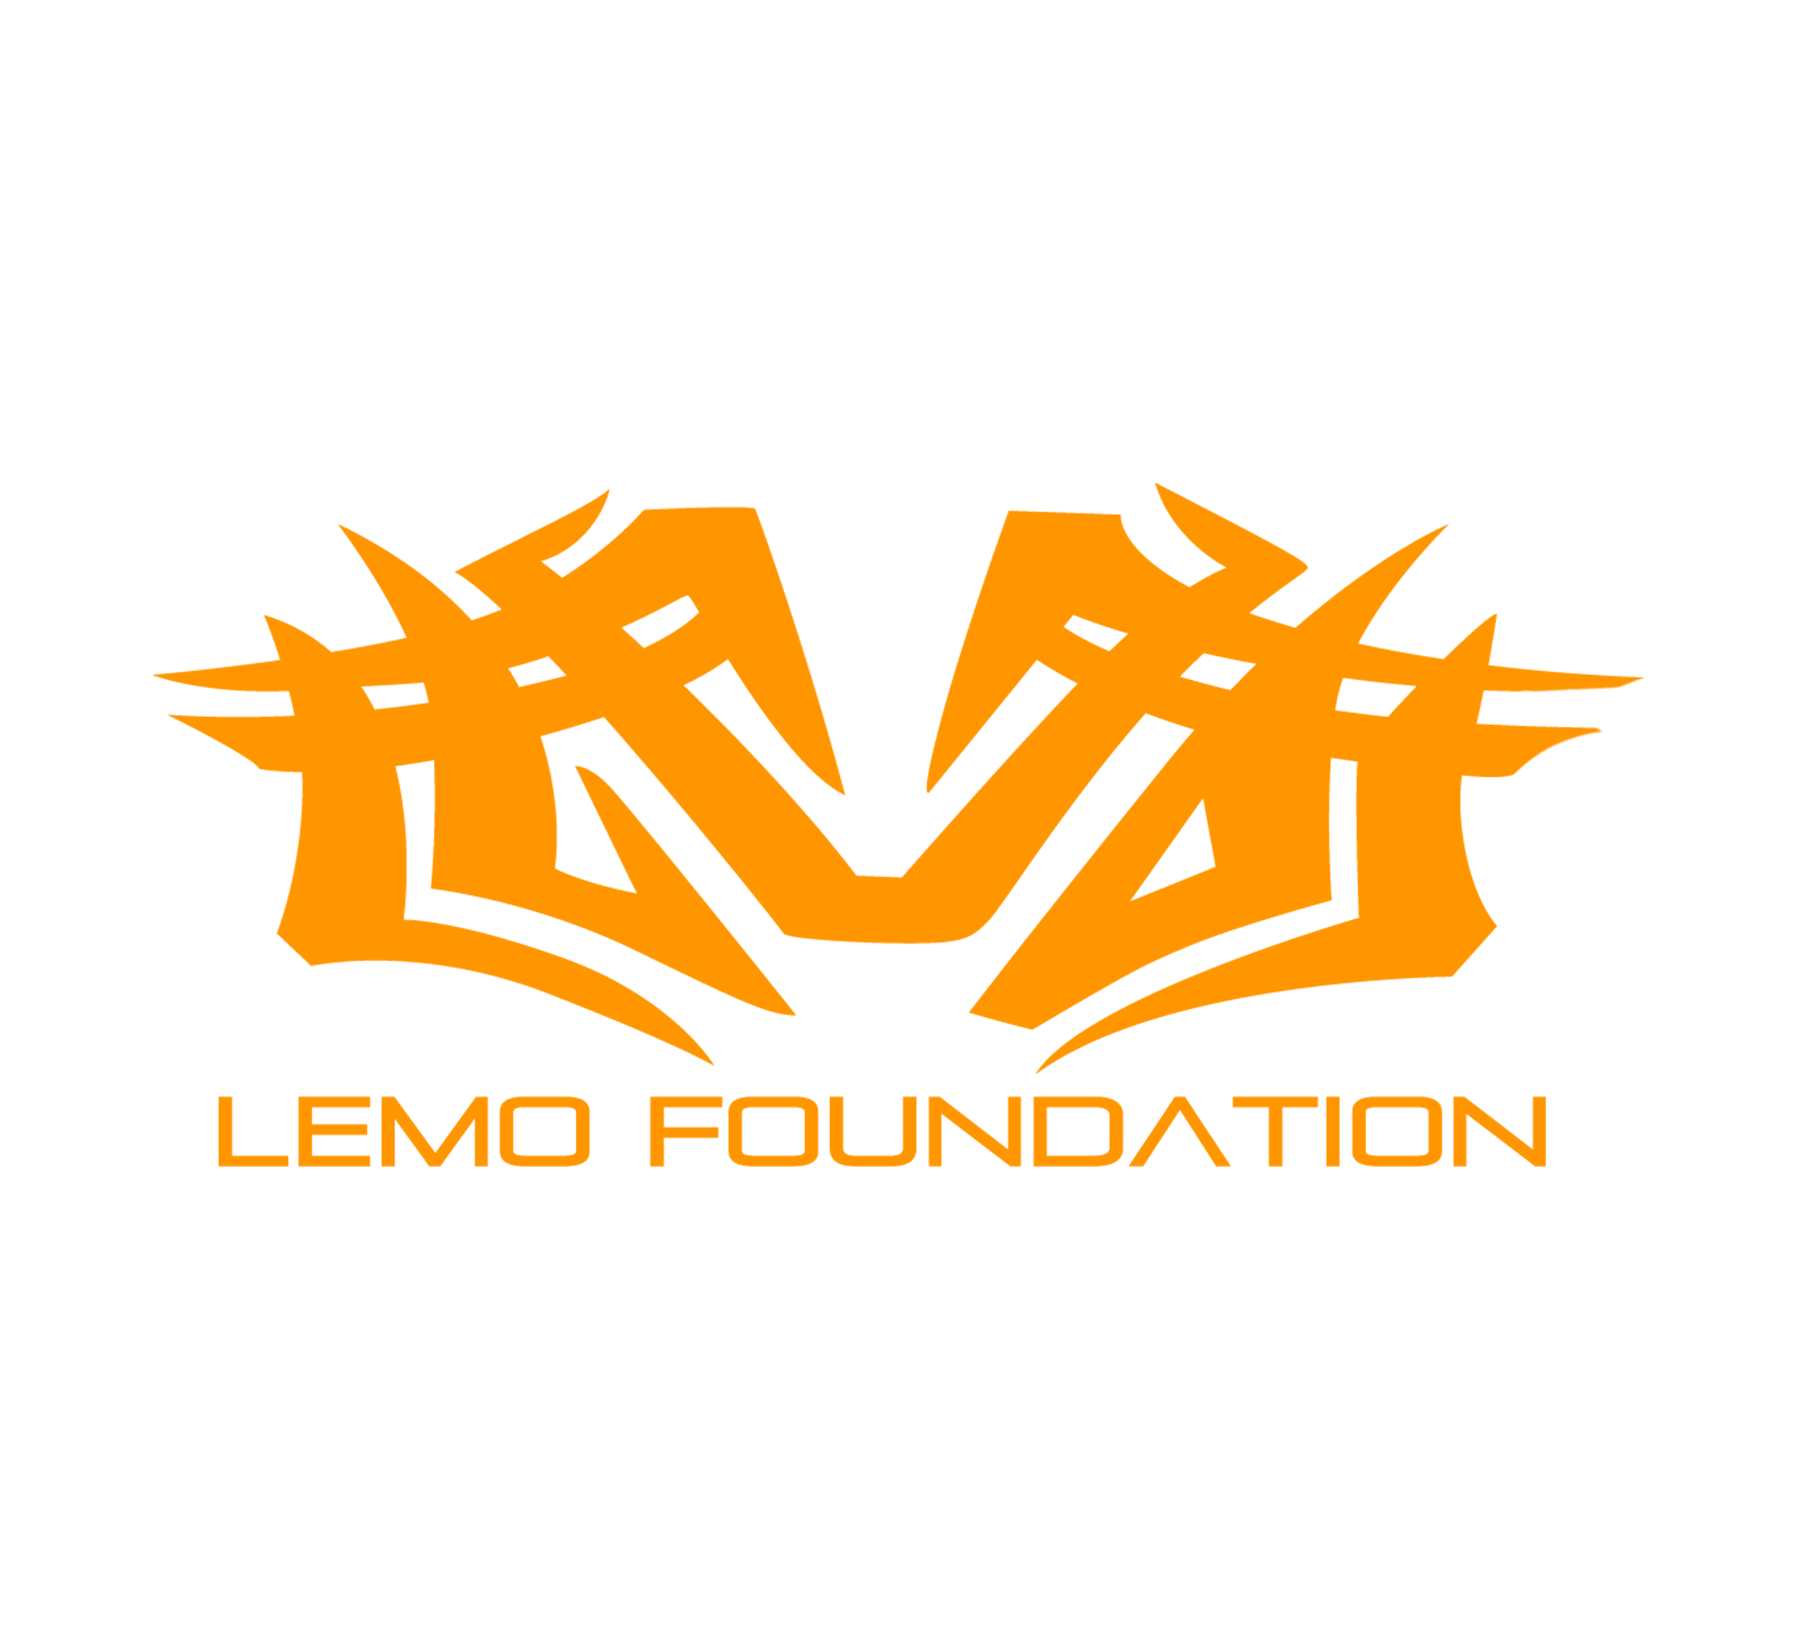 LEMOLOGOFINAL_orange